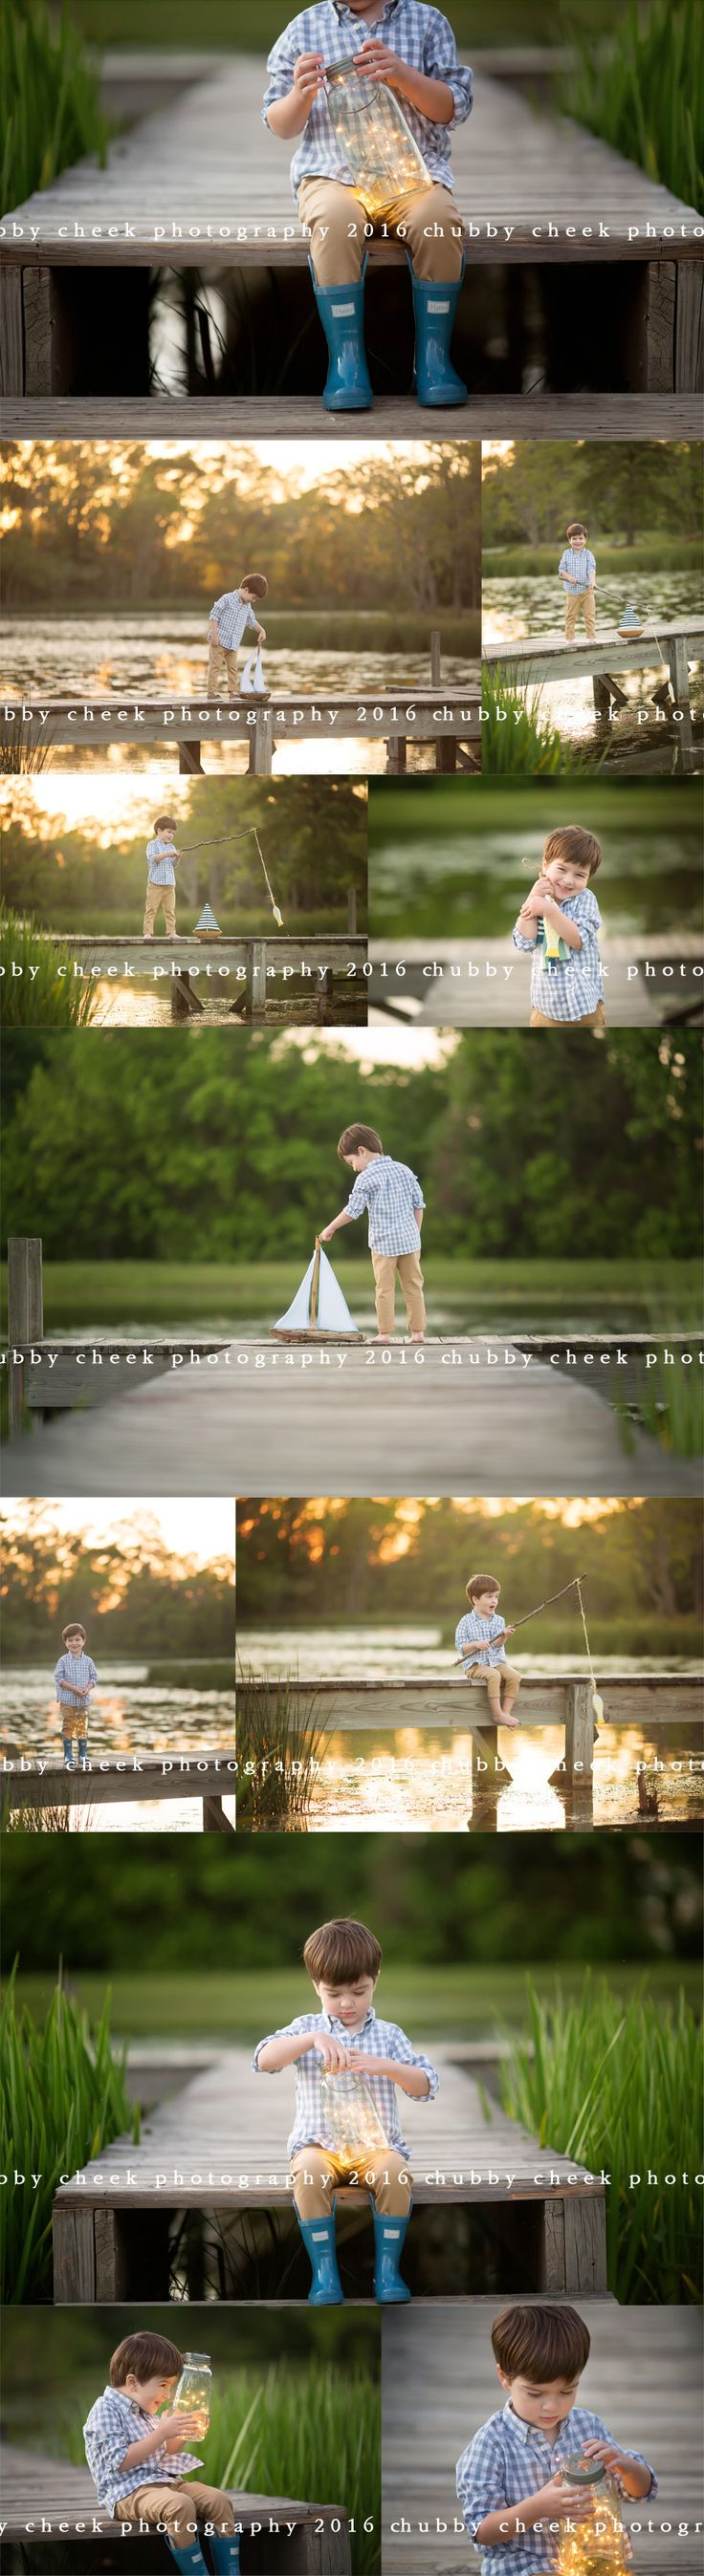 fireflies, fishin and little boy hugs… chubby cheek photography the woodlands tx photographer